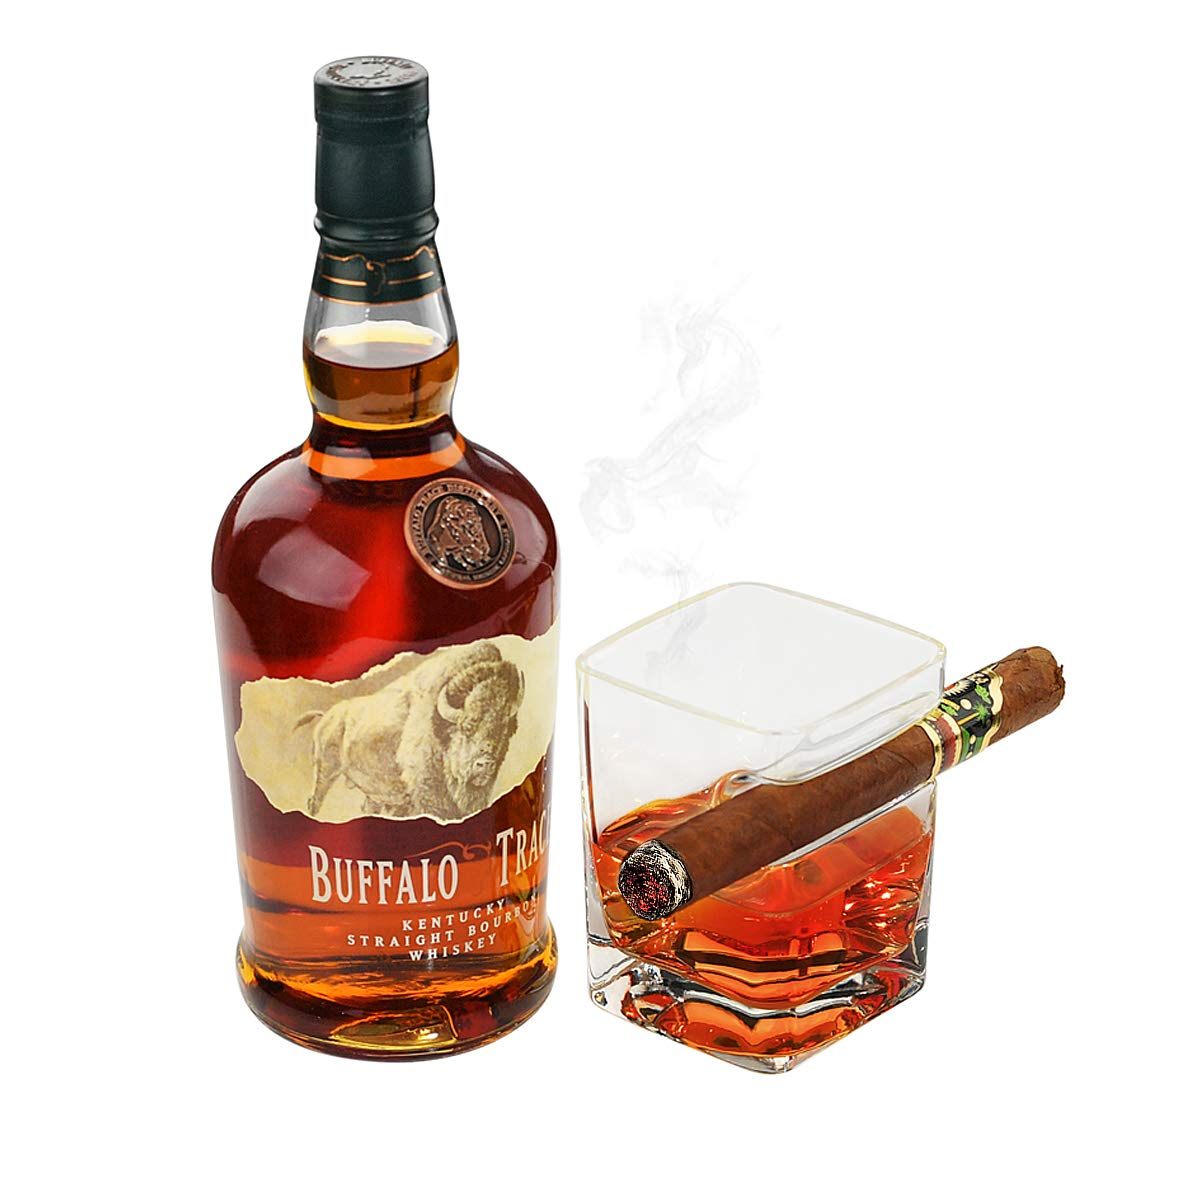 ARAD Cigar Holder and Drinking Glass, Smoking Accessories